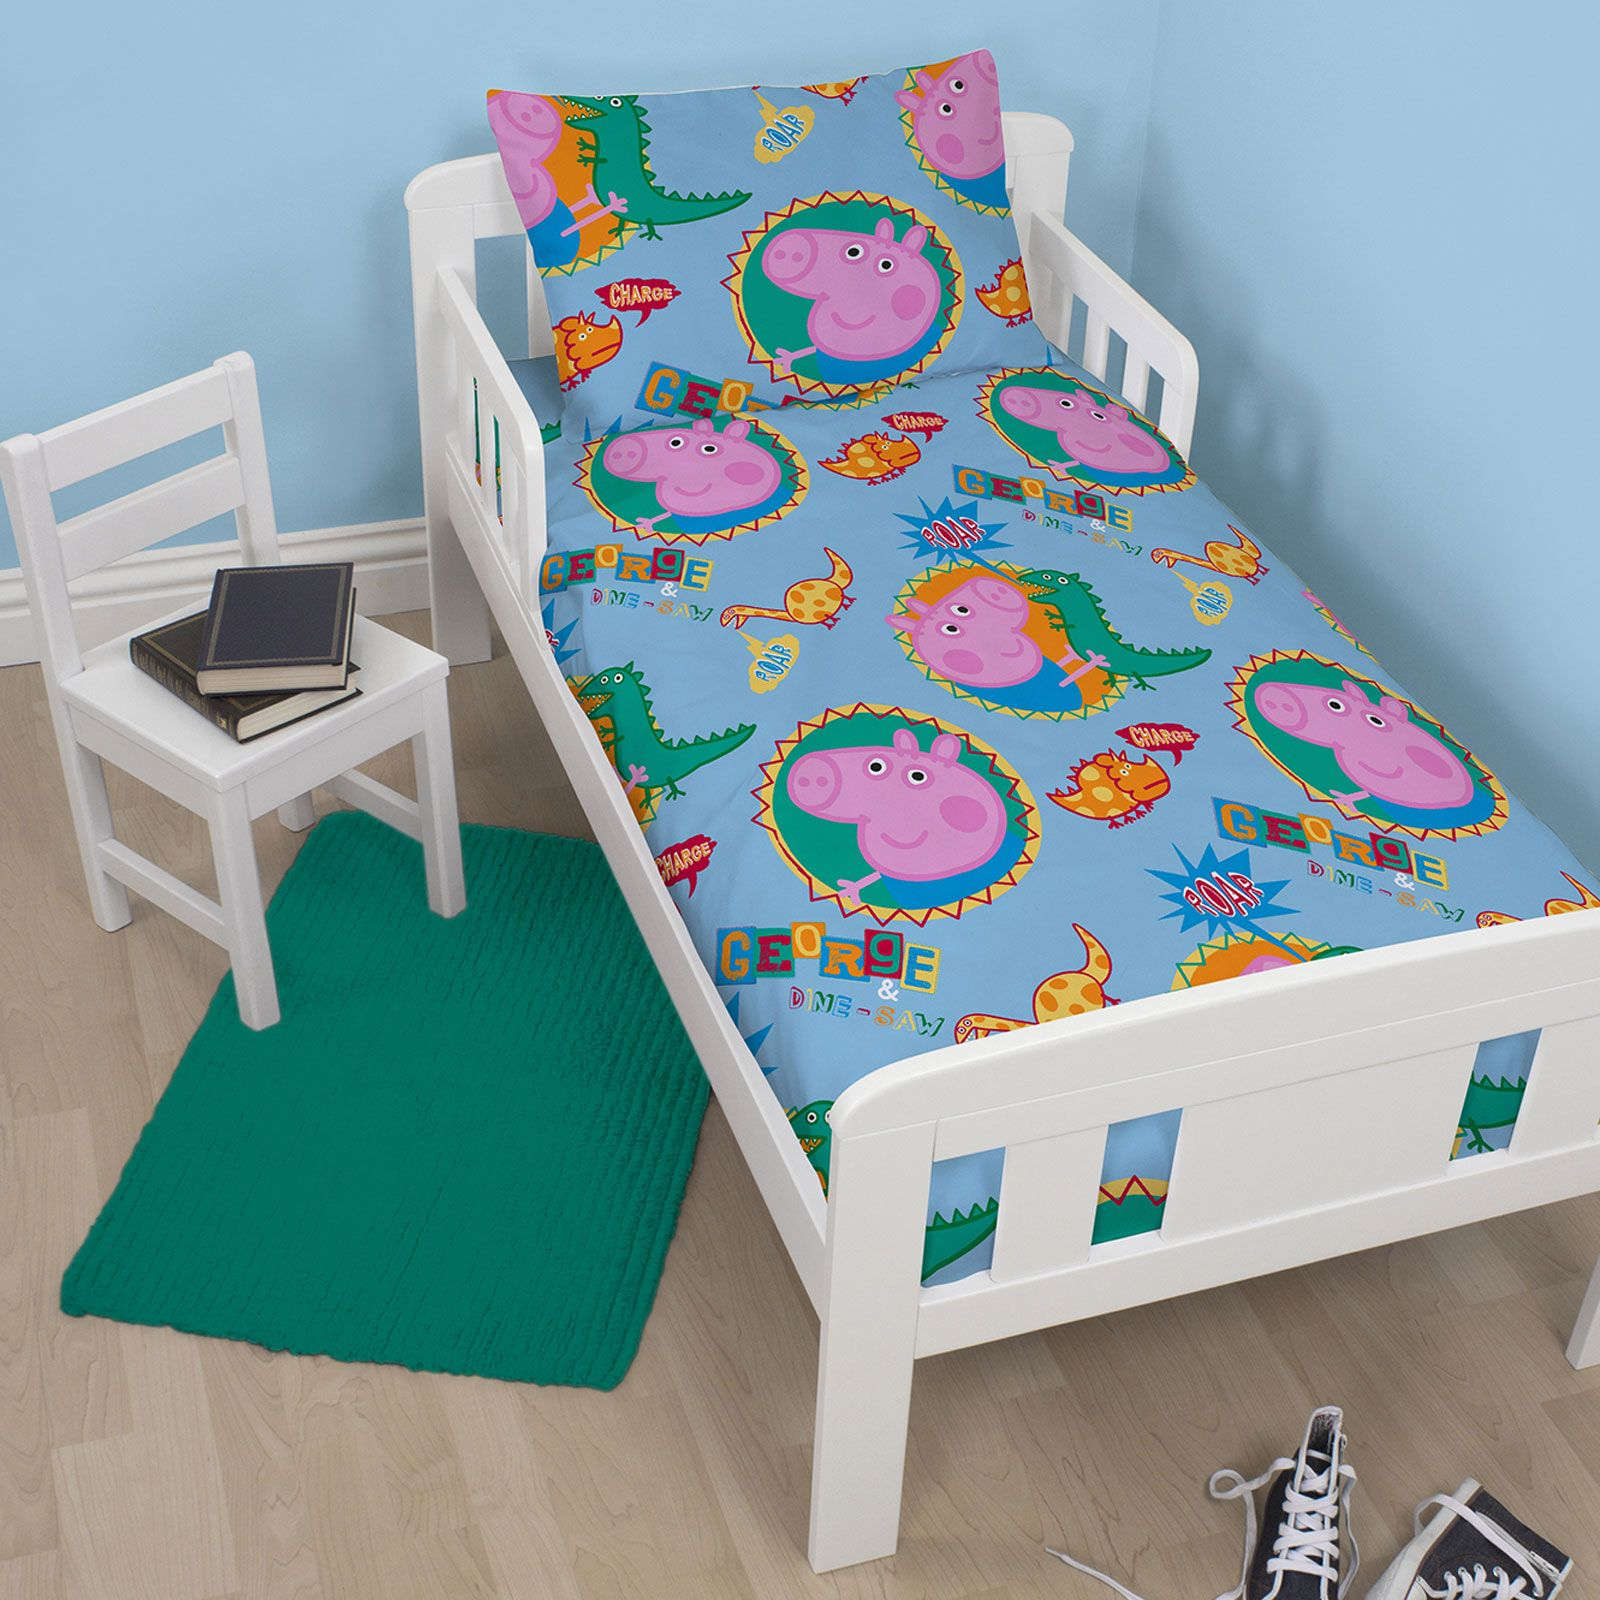 PEPPA PIG AND GEORGE BEDDING SINGLE DOUBLE amp. PEPPA PIG AND GEORGE BEDDING   SINGLE  DOUBLE   JUNIOR DUVET